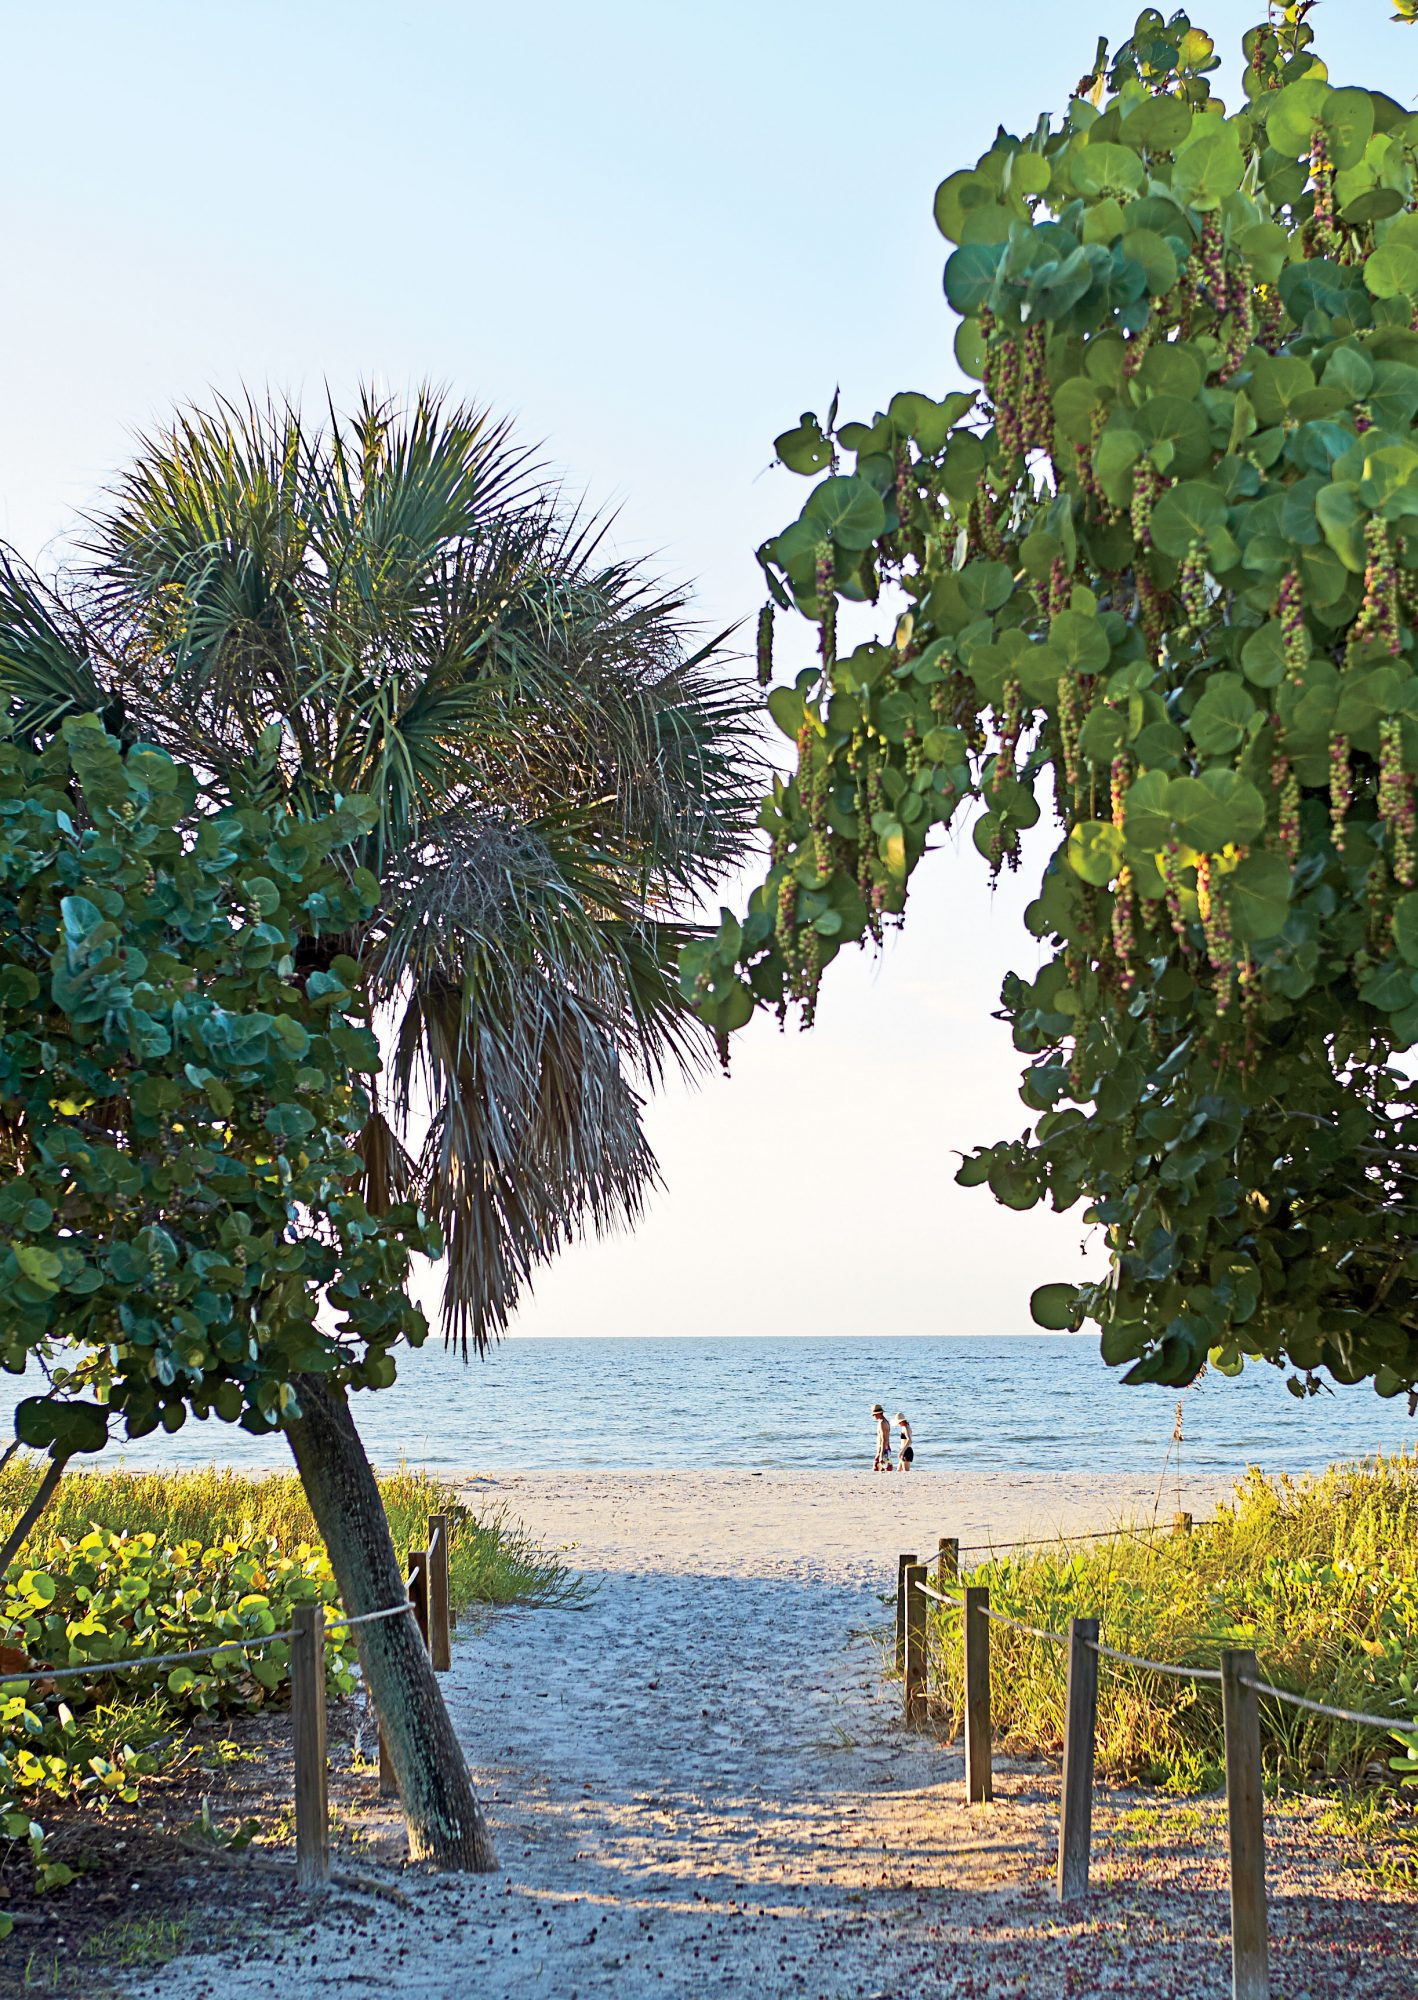 The very act of arriving on Sanibel Island, off Florida's southern Gulf coast, feels like a beautiful escape. The only way to get on the isle, 20 miles southwest of Fort Myers, is to drive across a three-mile causeway that is surrounded by a sparkling bay